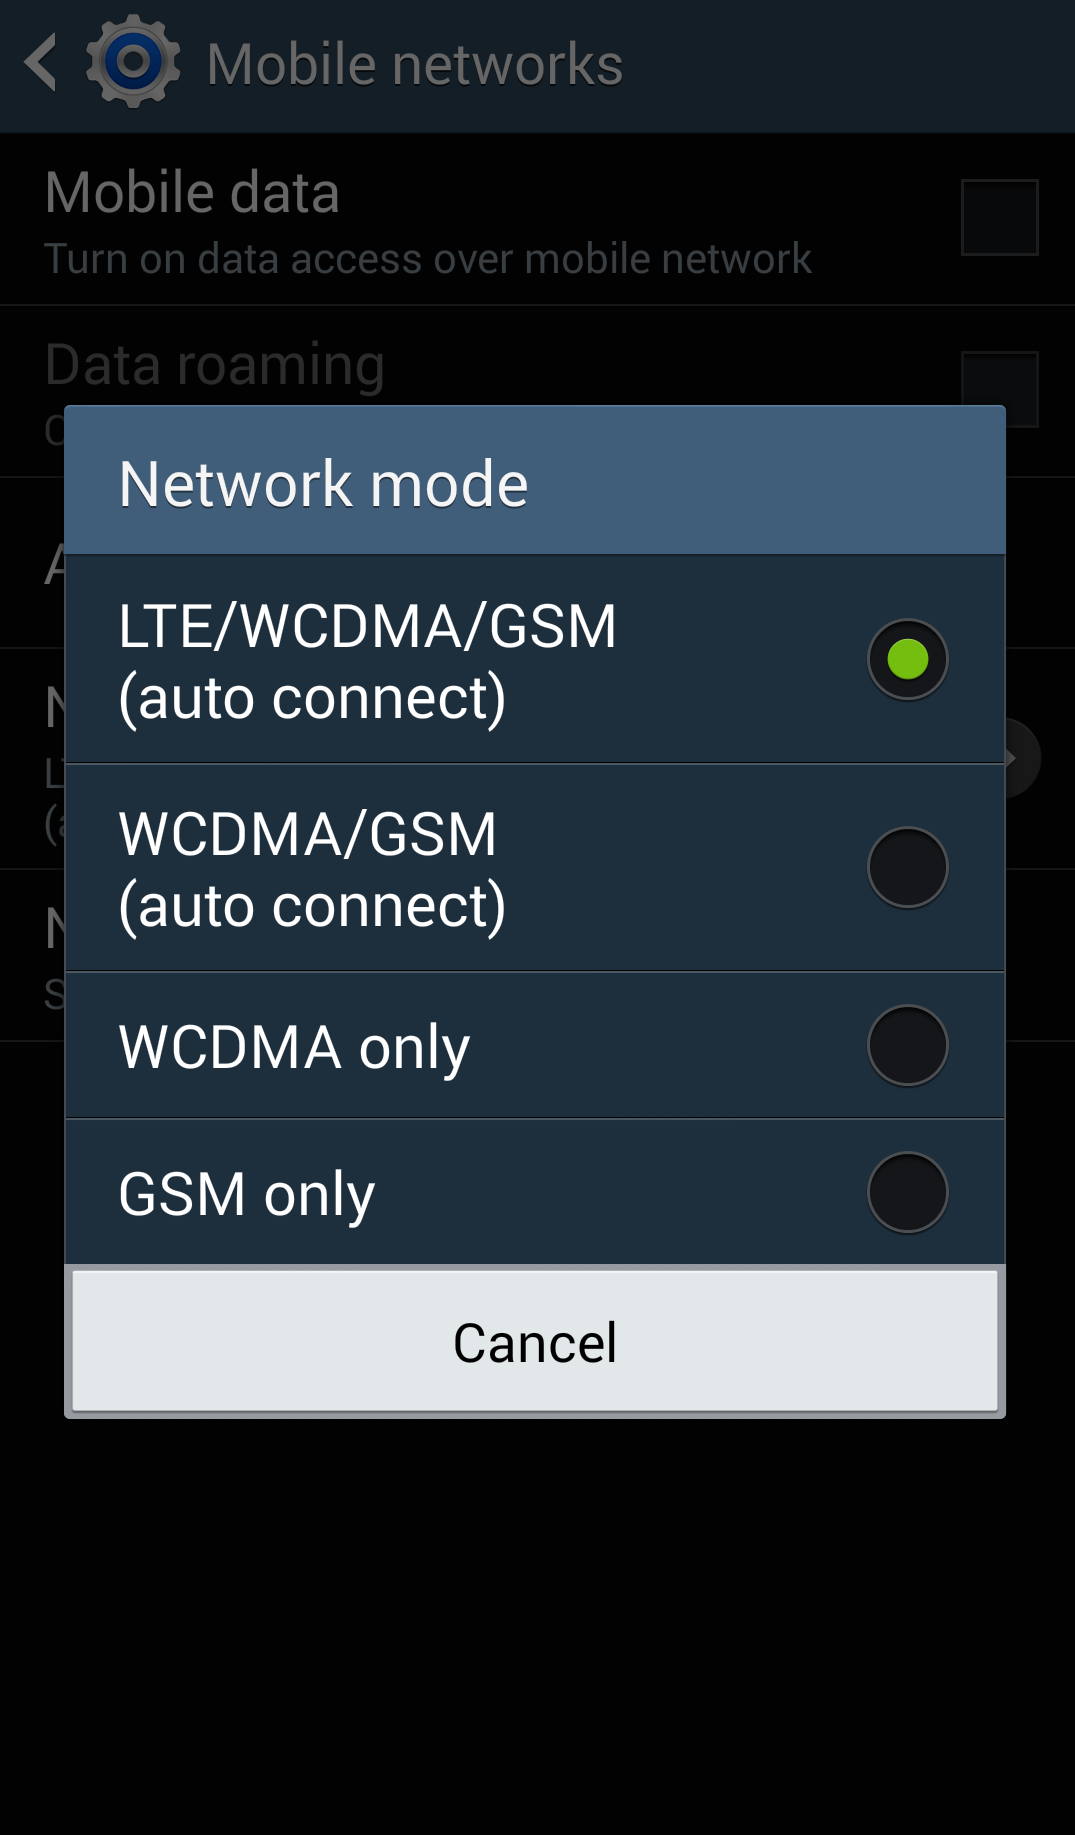 2014 04 12 16.17.45 - HOW TO : Fix the Galaxy Note 3, S4 and a bunch of Flagships to work with 4G in Sri Lanka